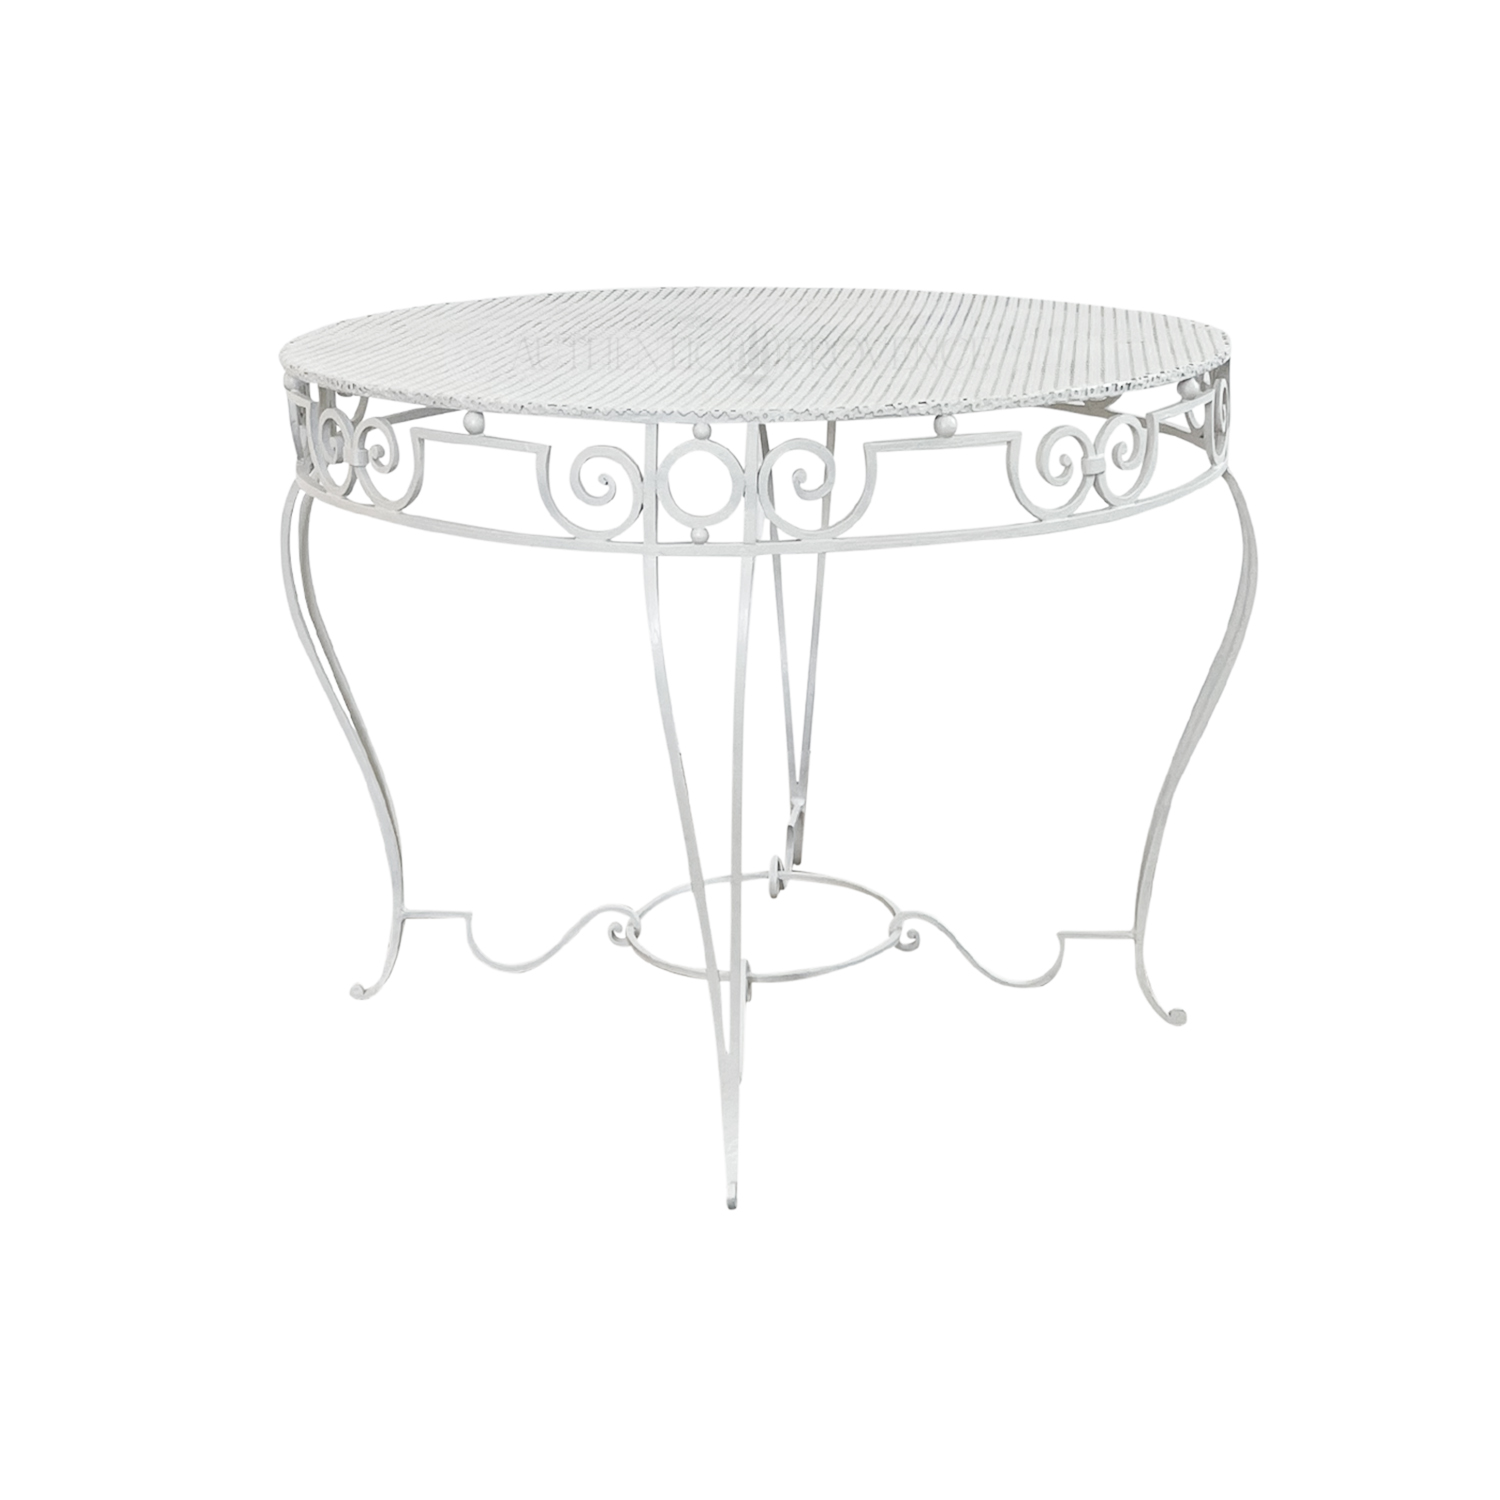 French Garden Table 1950's